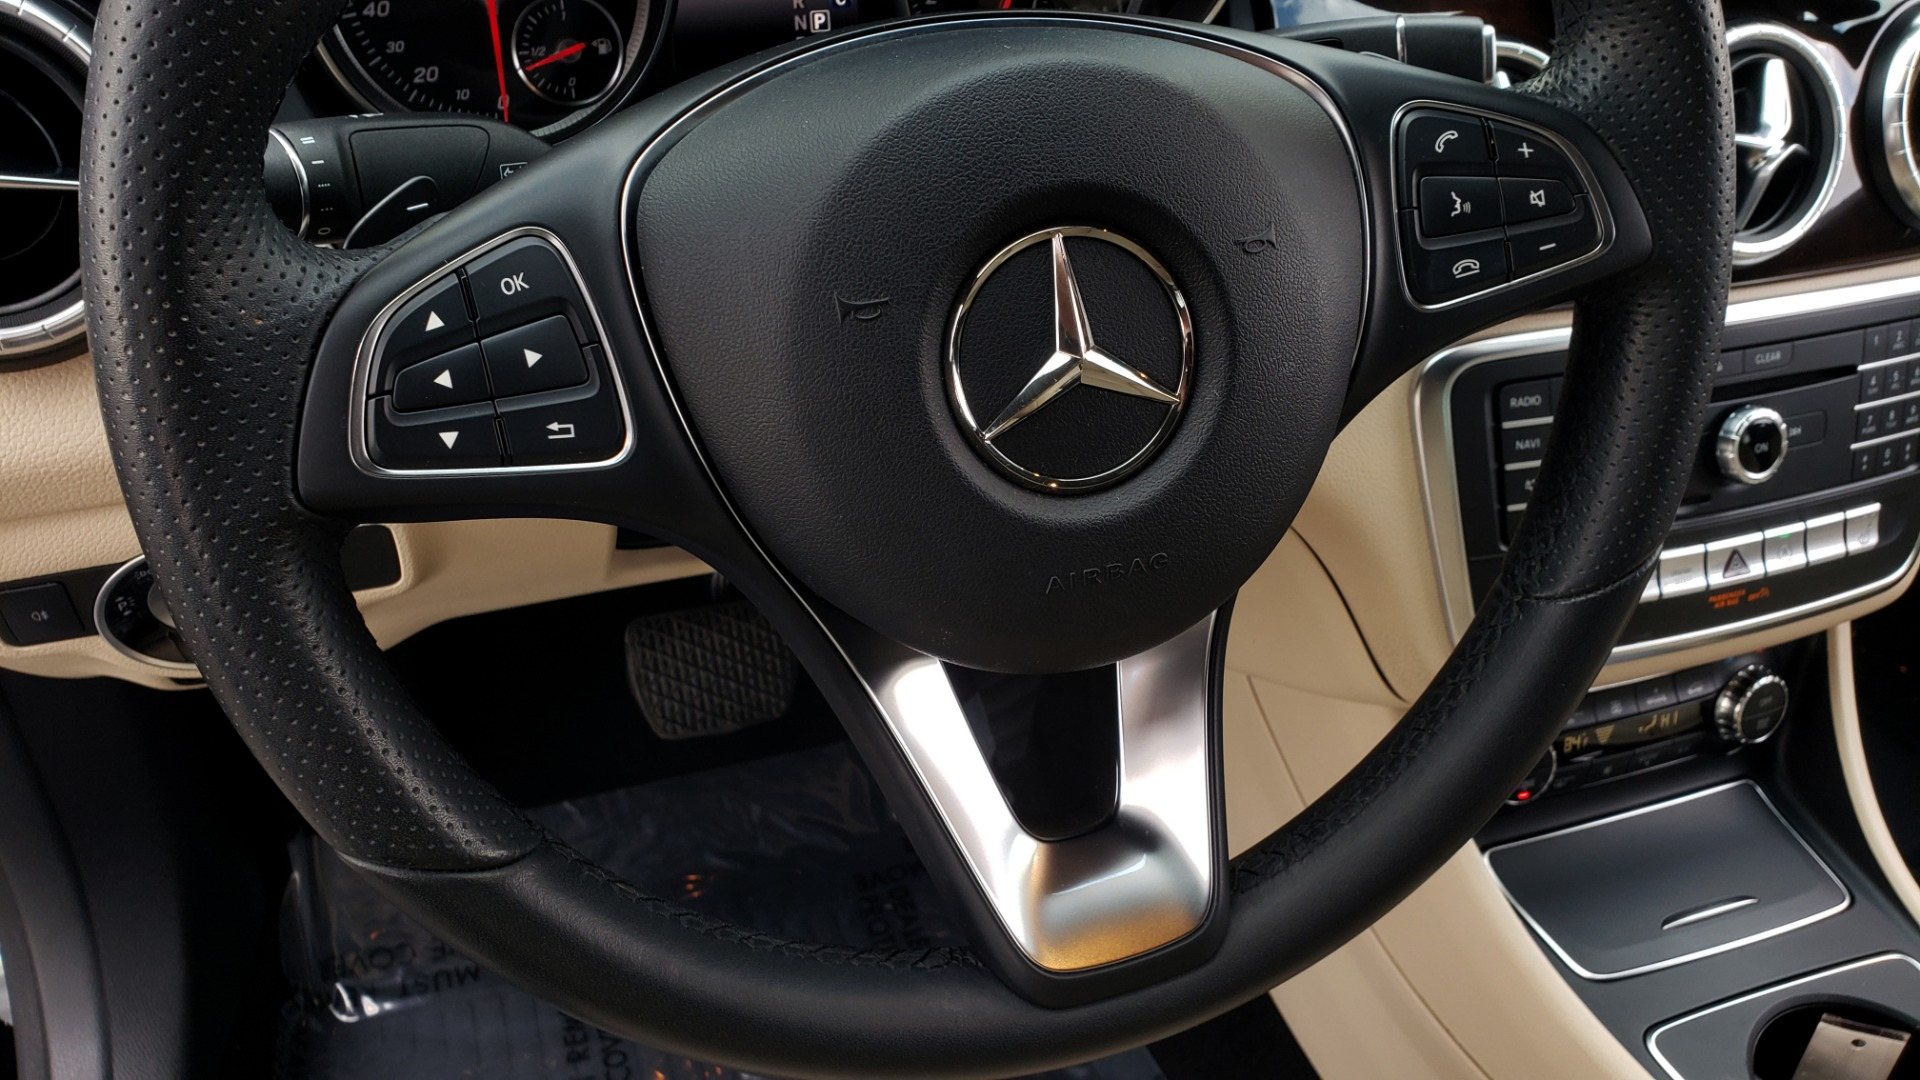 Used 2018 Mercedes-Benz CLA 250 / HEATED SEATS / BSA / APPLE CARPLAY / ANDROID AUTO / 18IN WHEEL for sale $24,195 at Formula Imports in Charlotte NC 28227 38